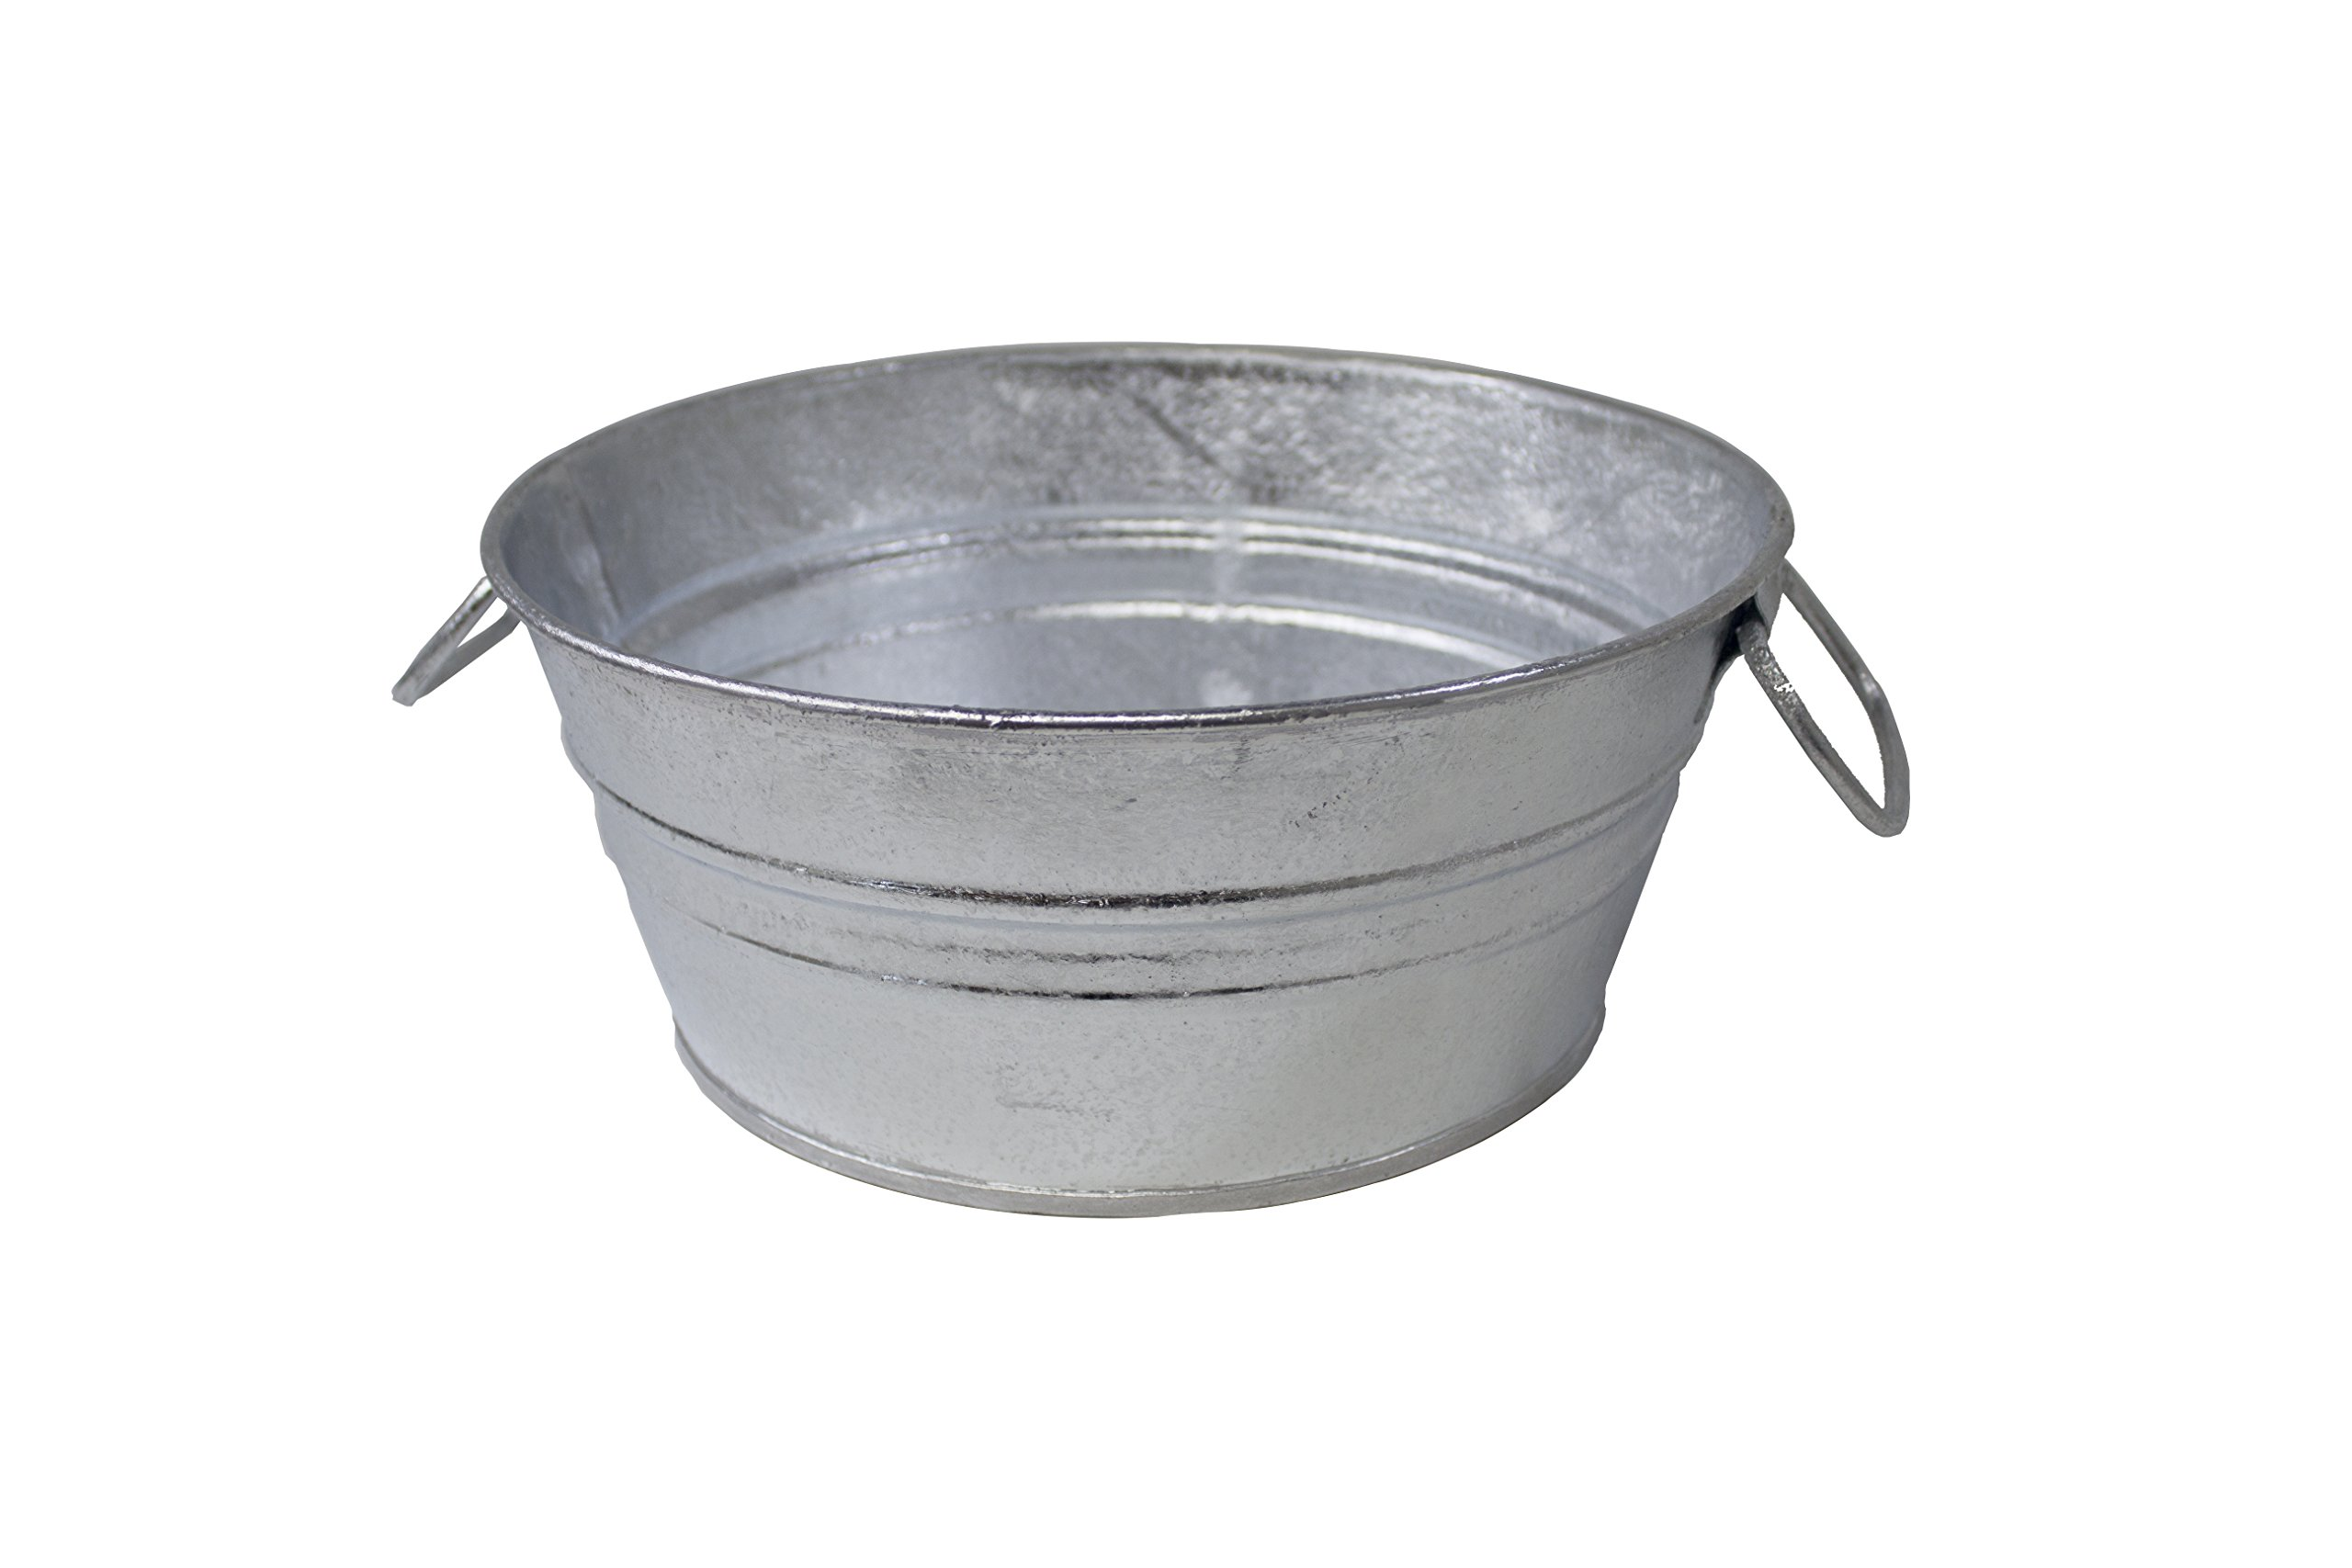 Behrens 103LFT 1.5 Gallon Hot Dipped Steel Low Flat Tub, Silver